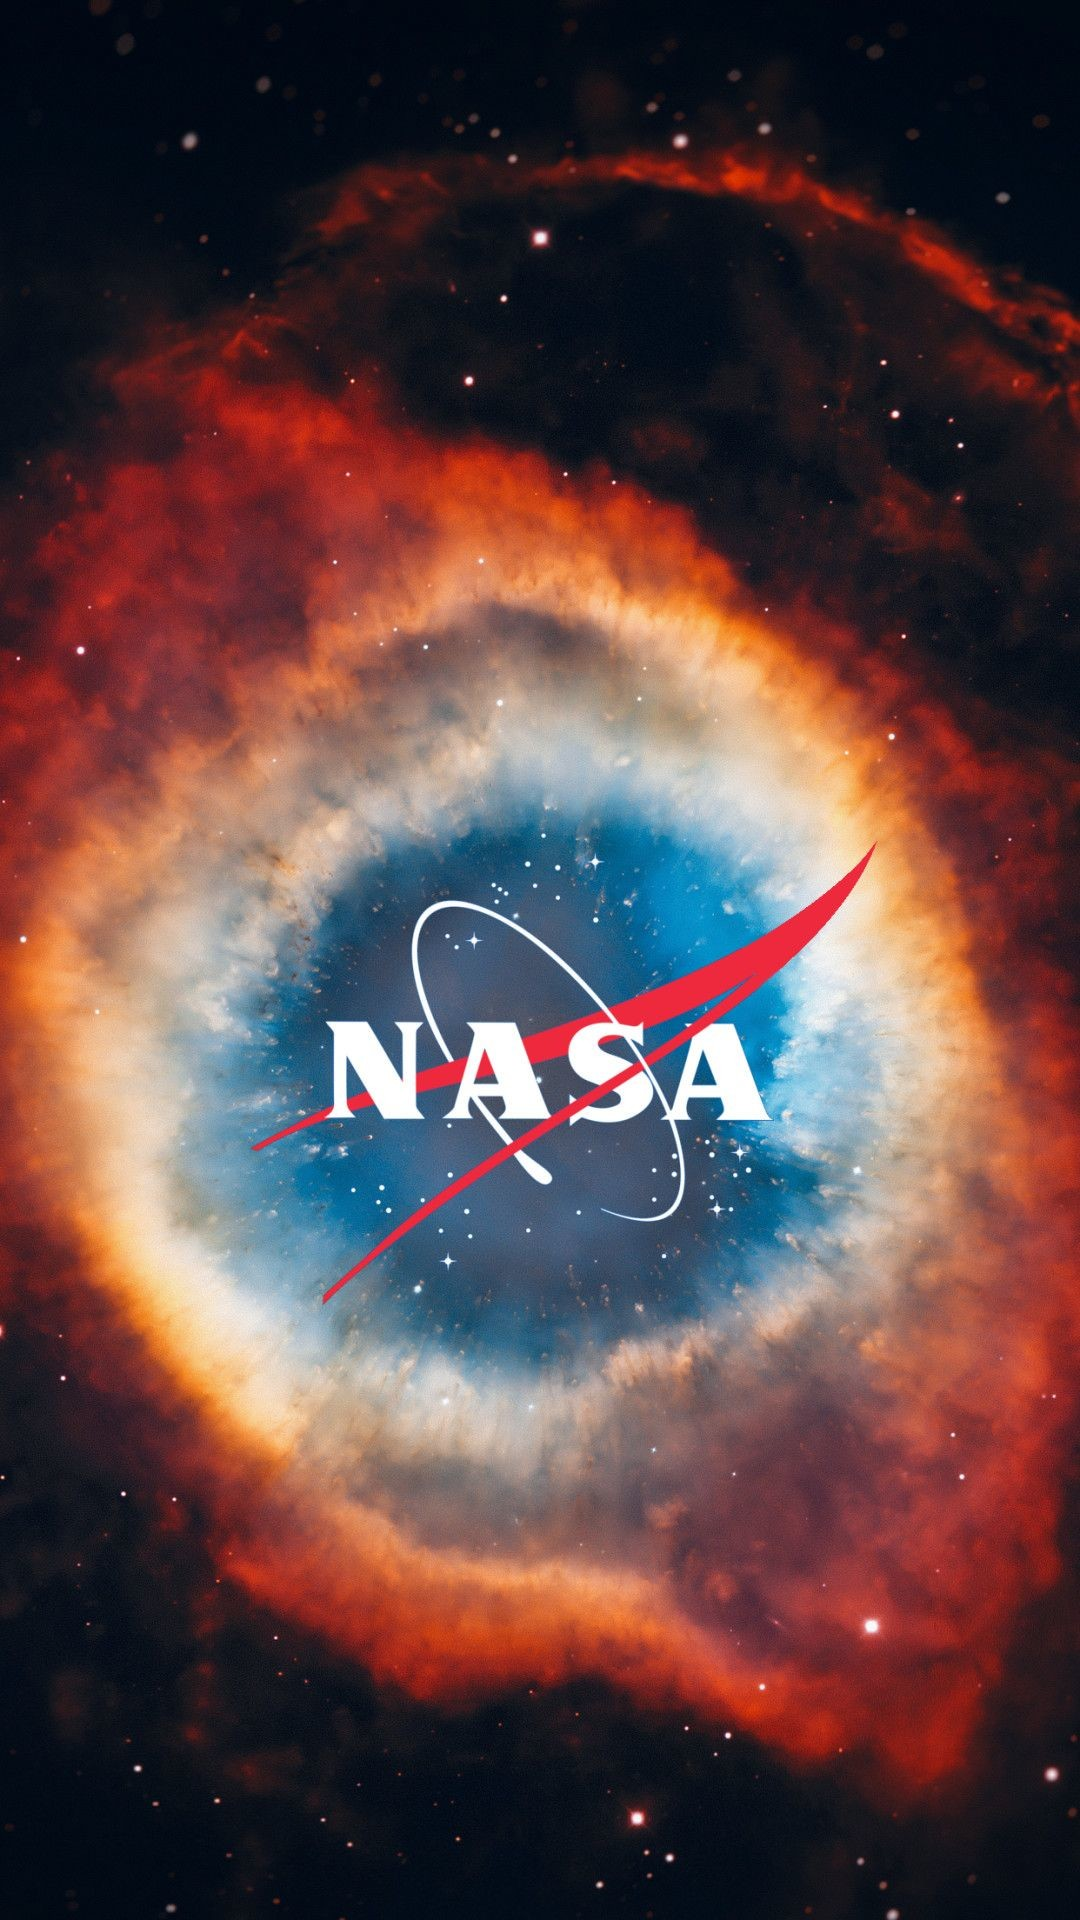 1080x1920  Download Wallpaper · nasa logo .